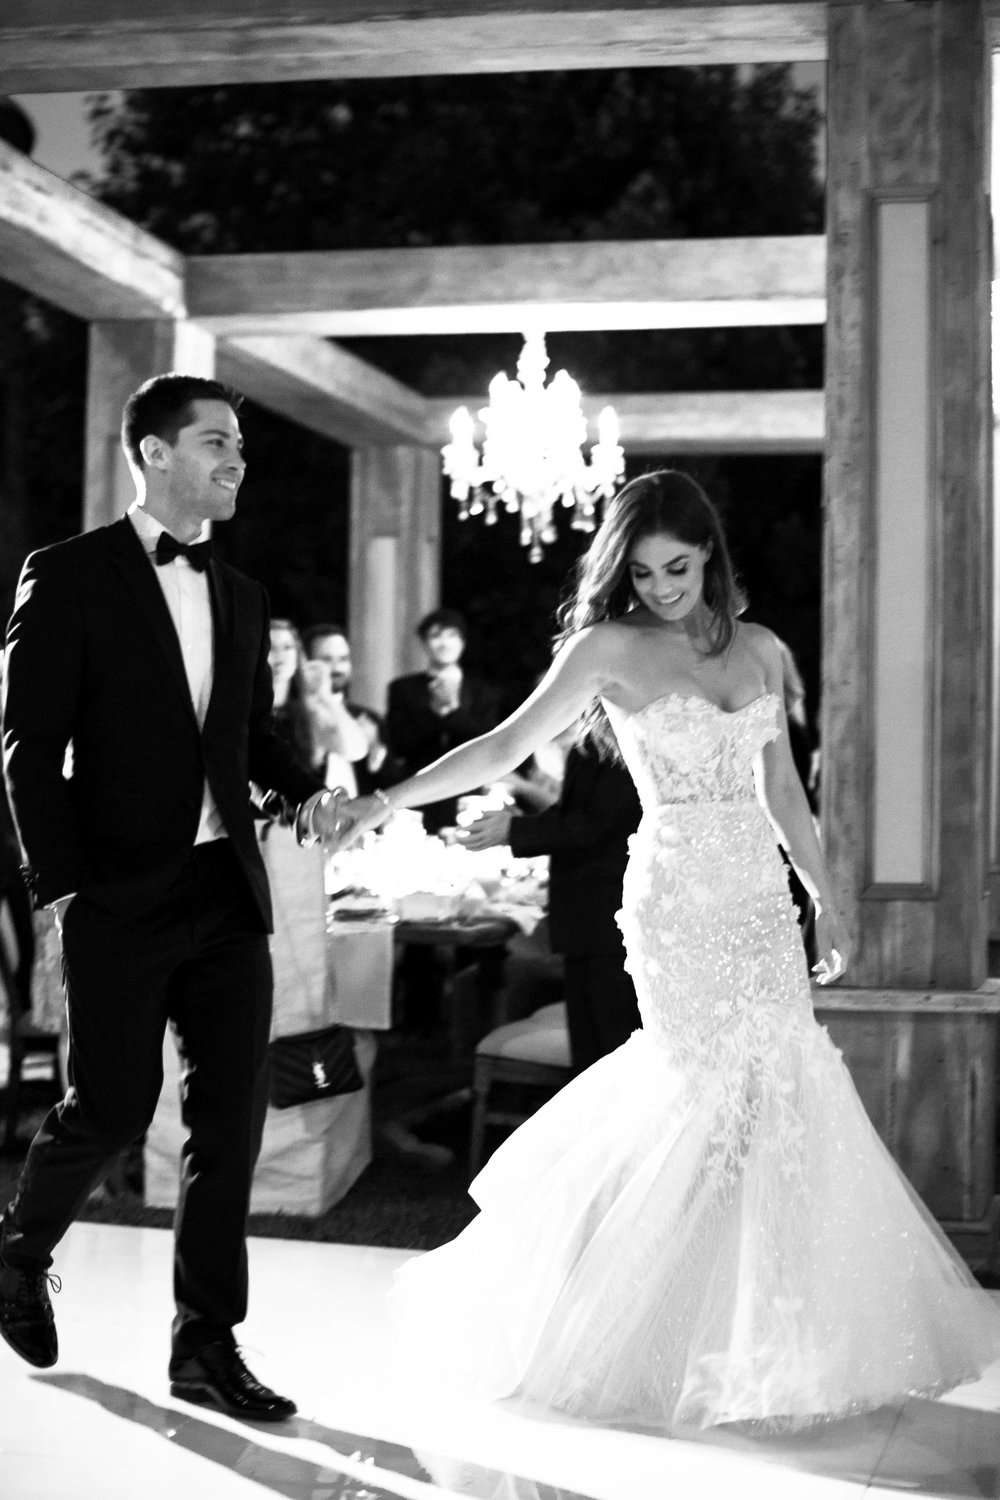 JillianMurray_Deangeyer_Wedding_Jana_Williams_Photography-7404.jpg